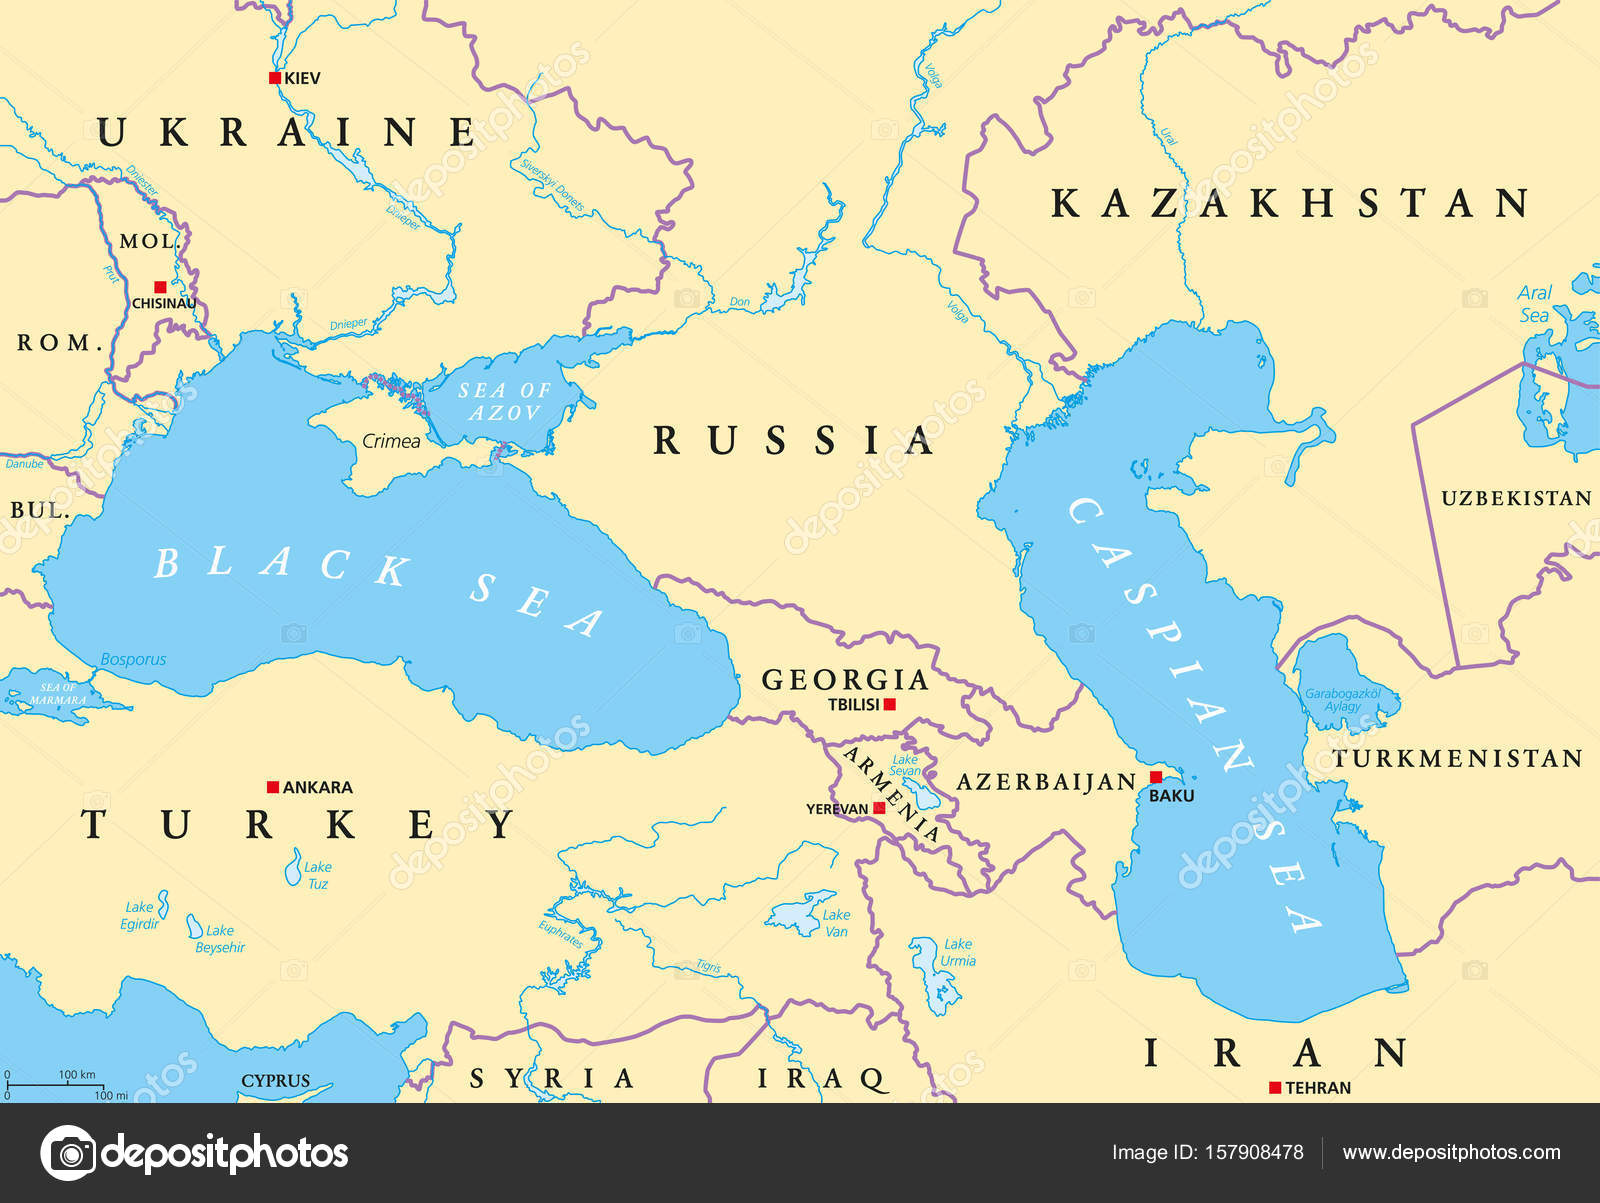 Black Sea And Caspian Sea Map Black Sea And Caspian Sea Region